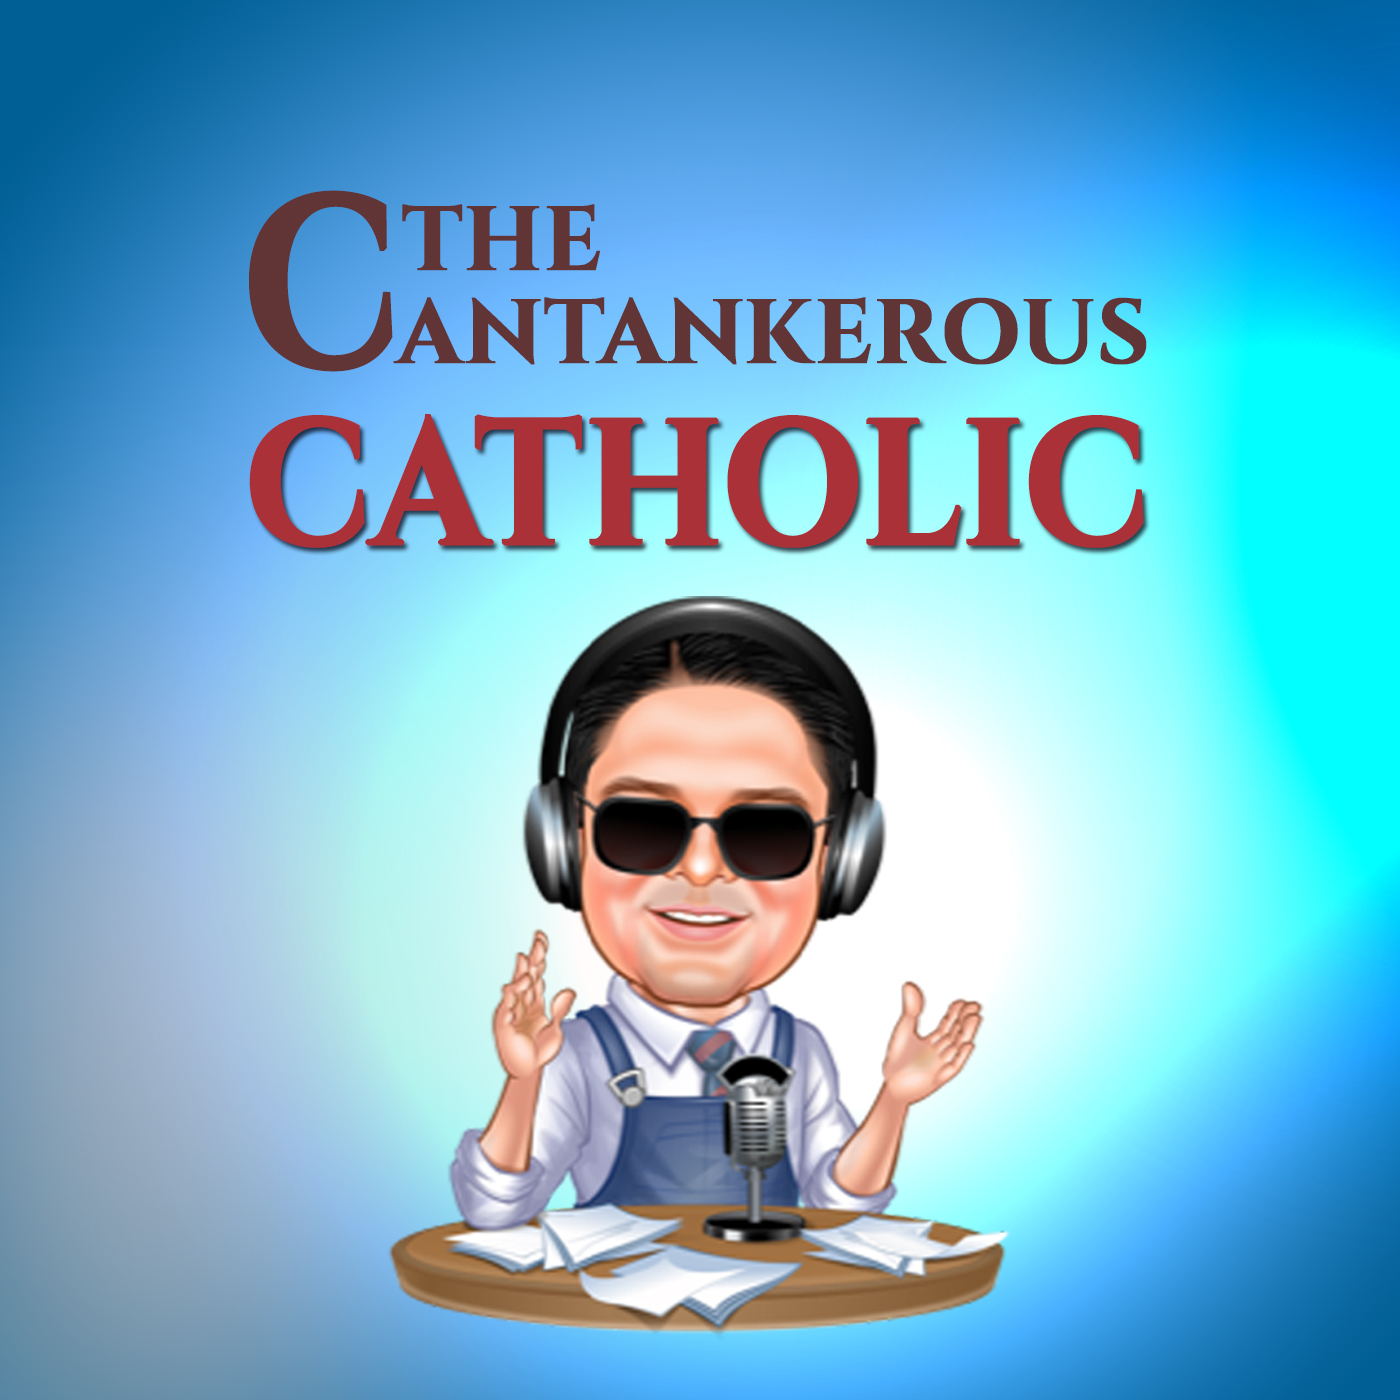 Artwork for podcast The Cantankerous Catholic